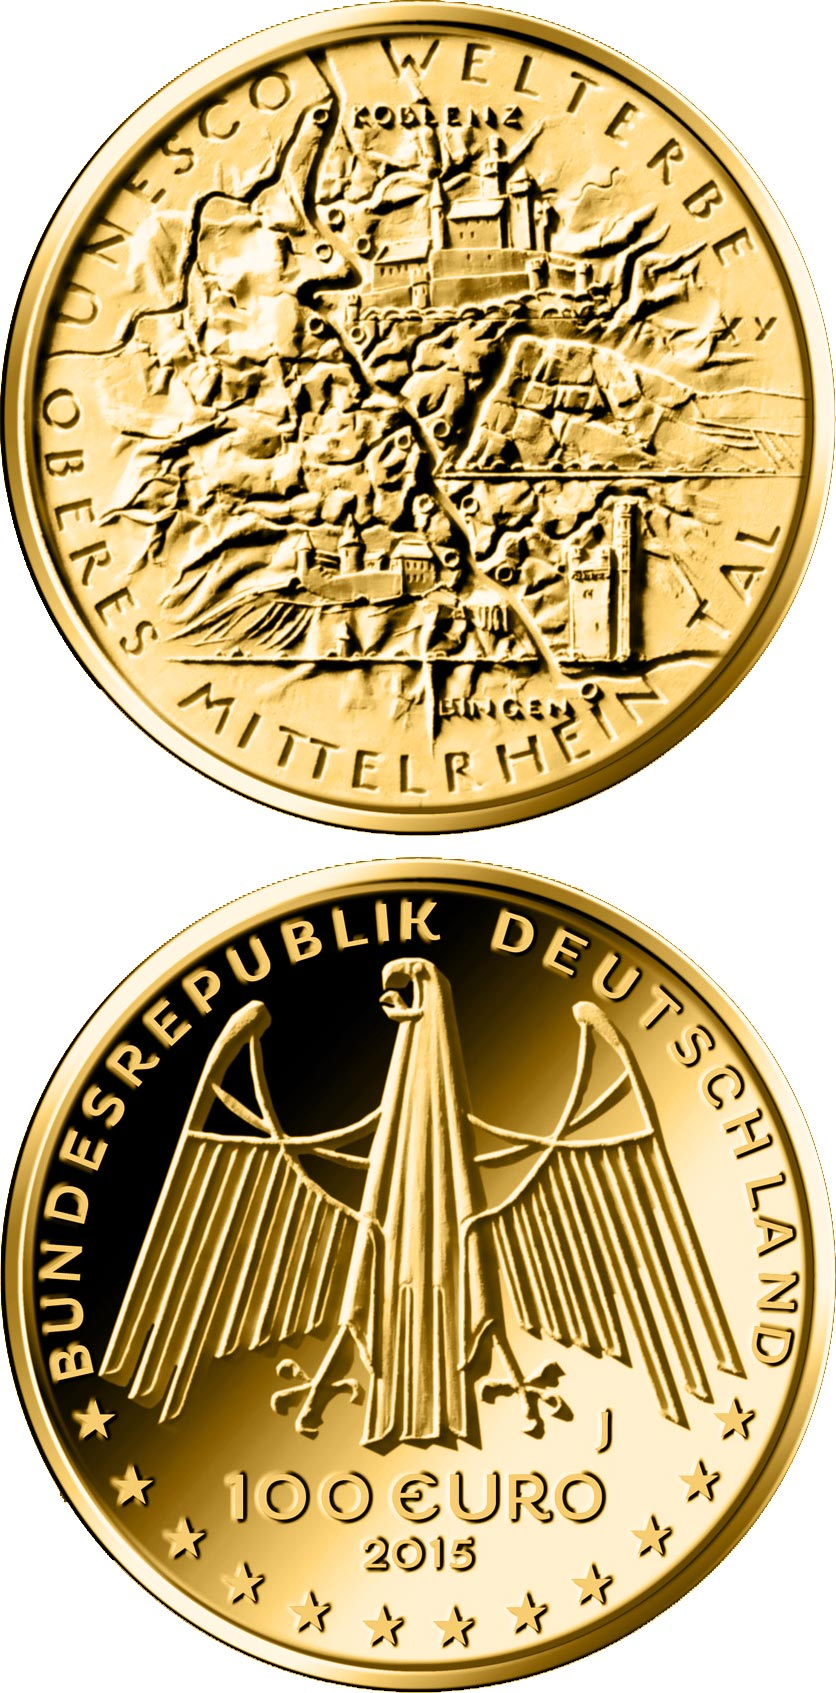 Image of 100 euro coin - UNESCO Welterbe - Oberes Mittelrheintal | Germany 2015.  The Gold coin is of Proof quality.